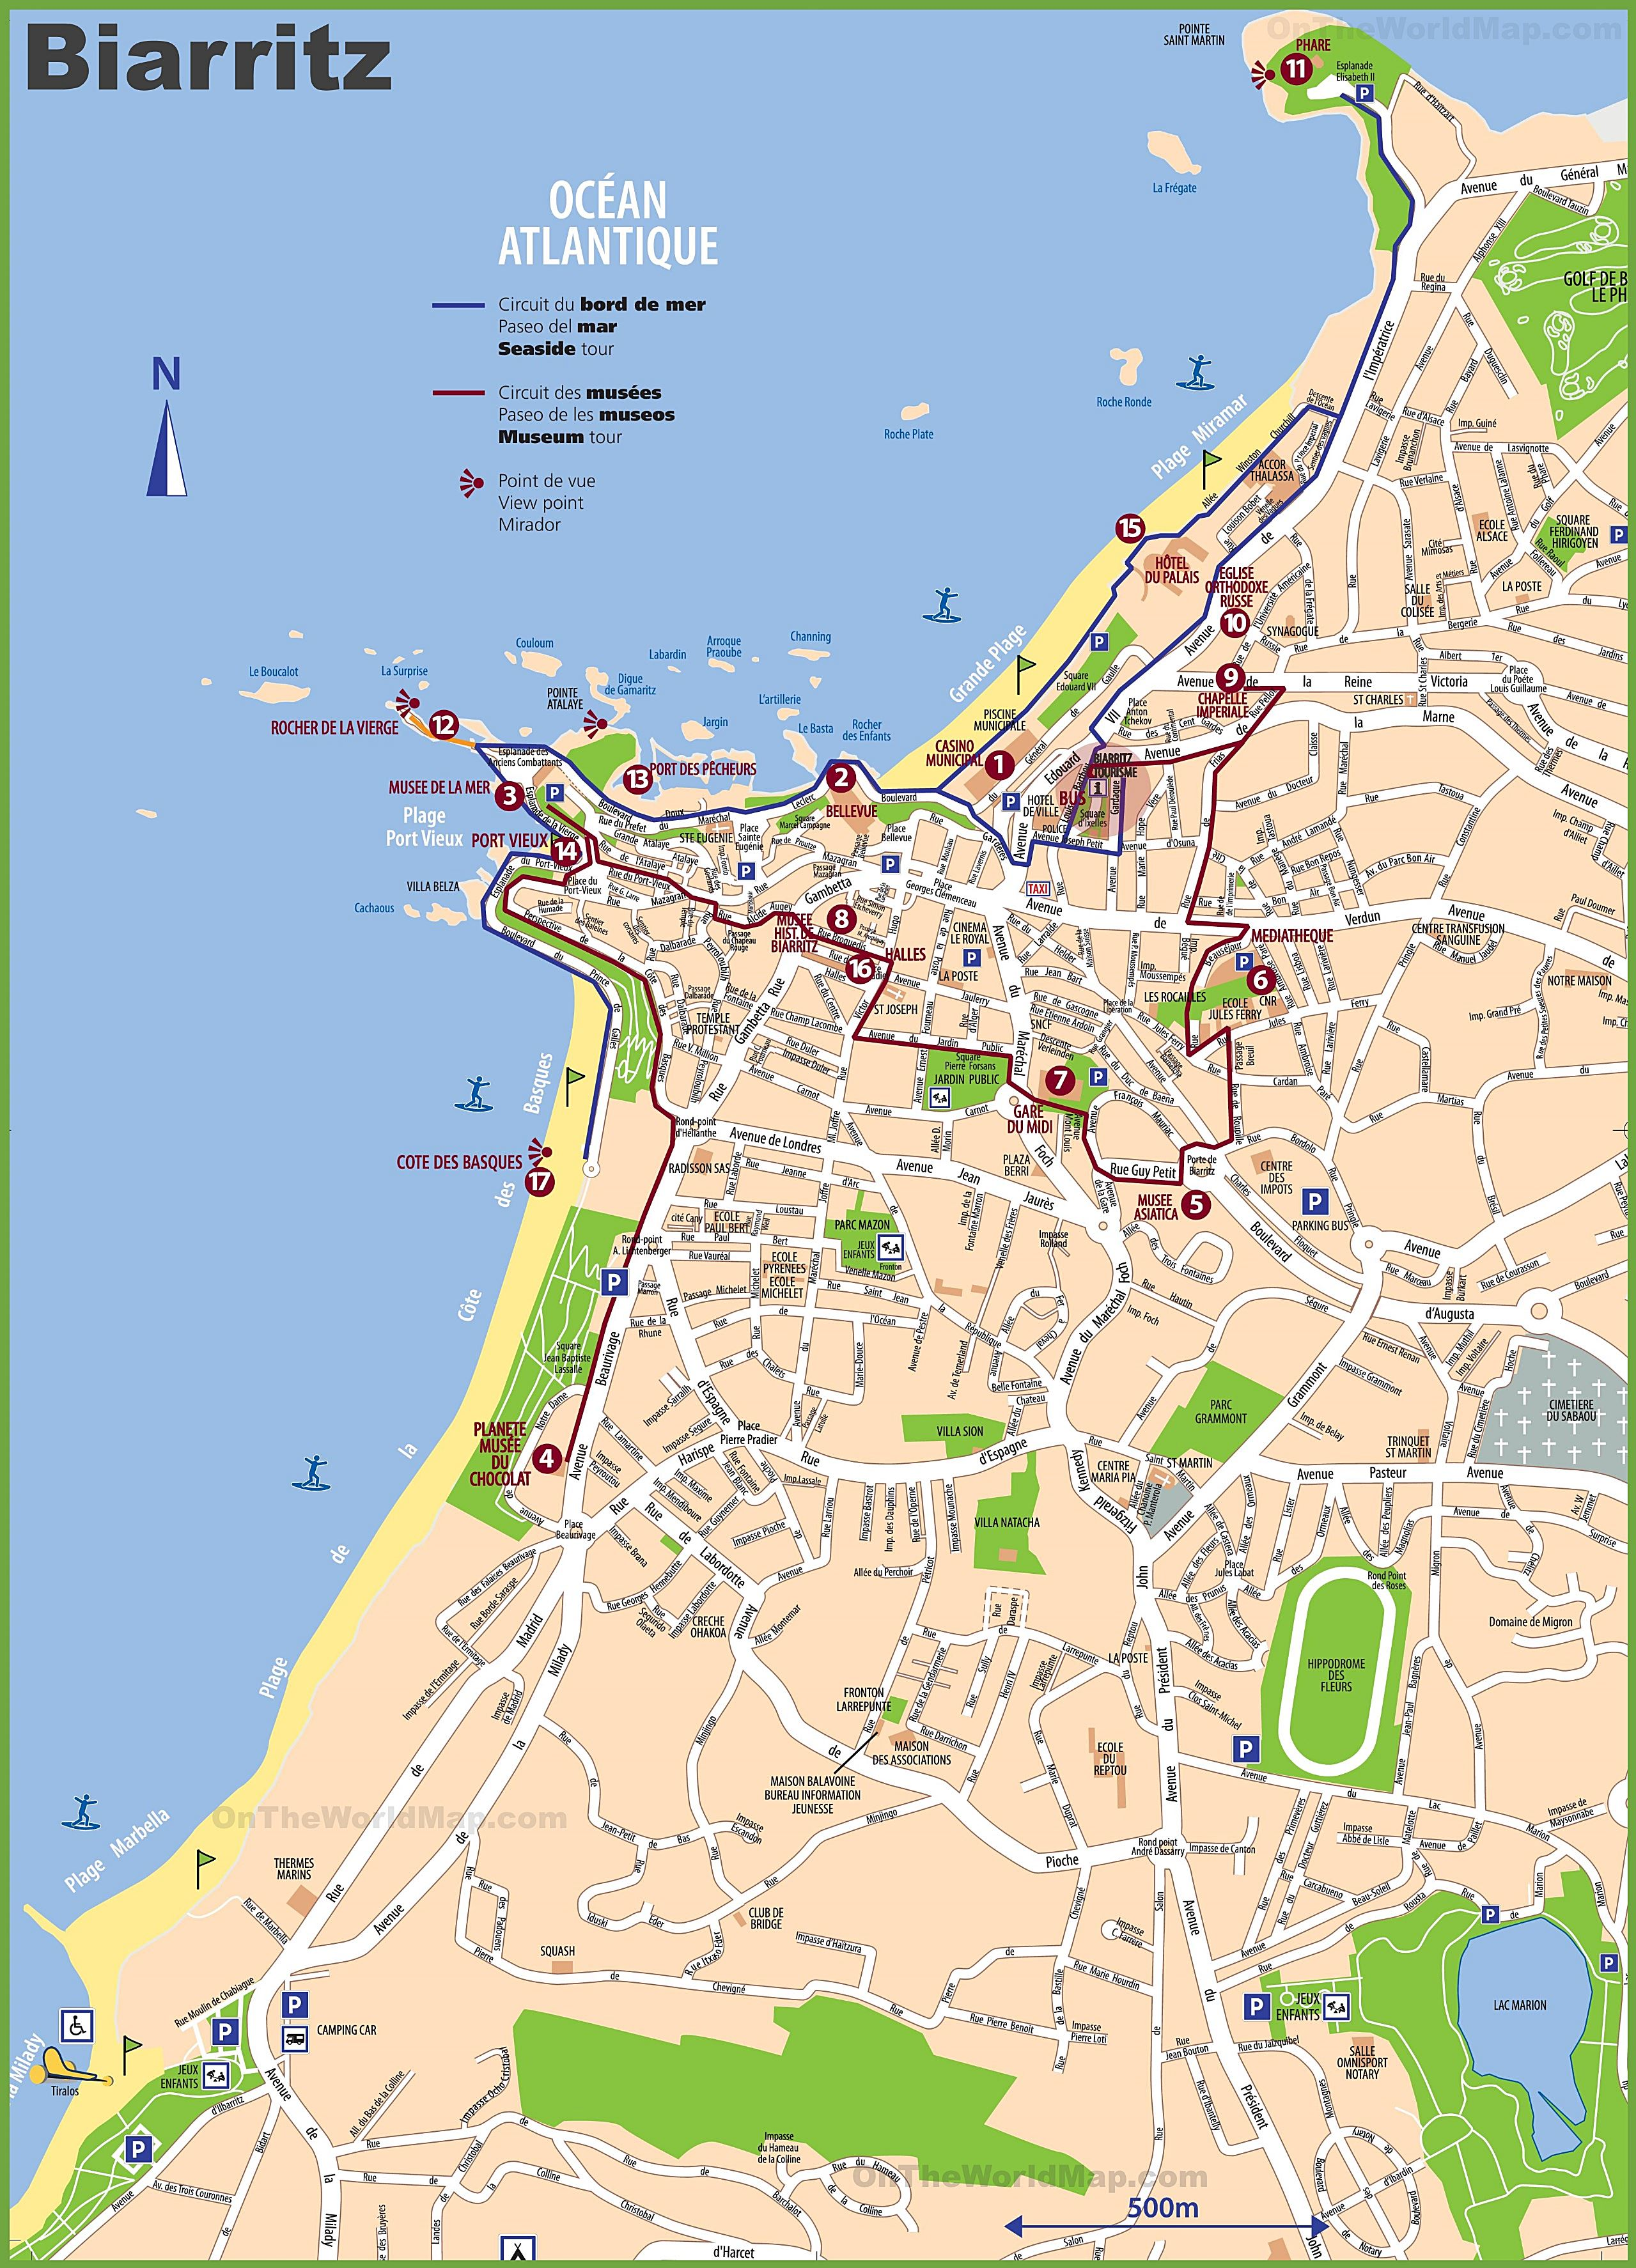 biarritz mapa Large Biarritz Maps for Free Download and Print | High Resolution  biarritz mapa